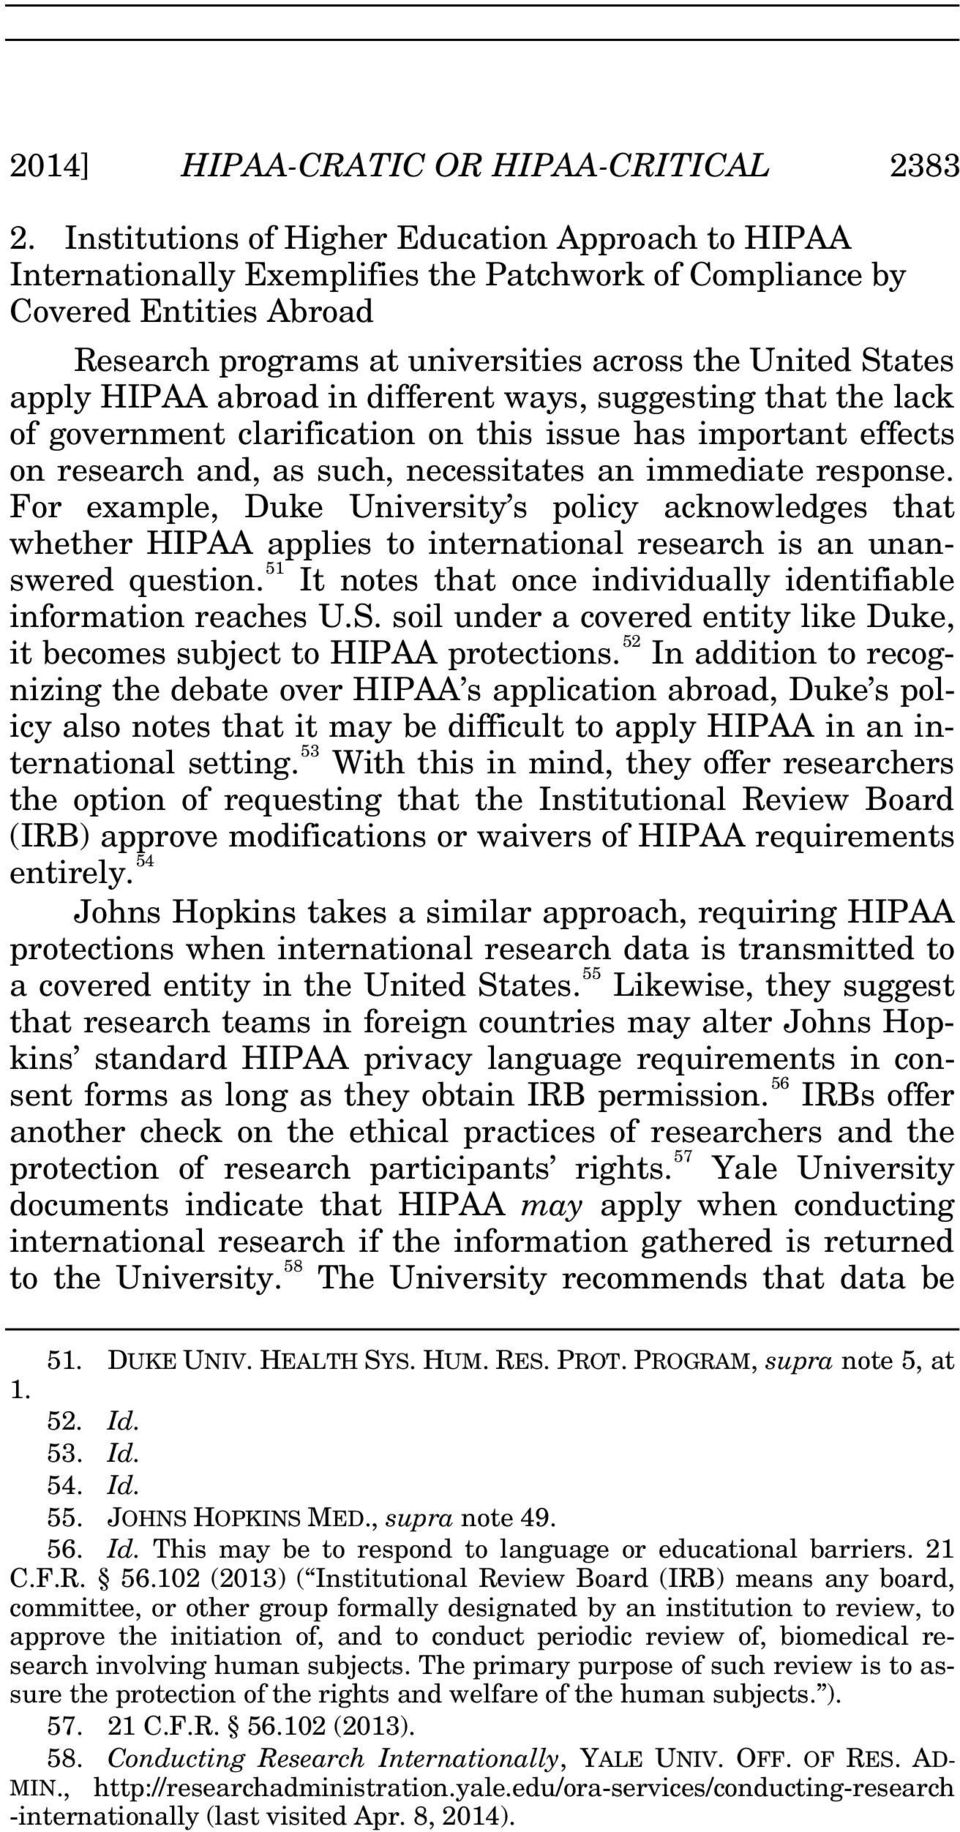 HIPAA abroad in different ways, suggesting that the lack of government clarification on this issue has important effects on research and, as such, necessitates an immediate response.